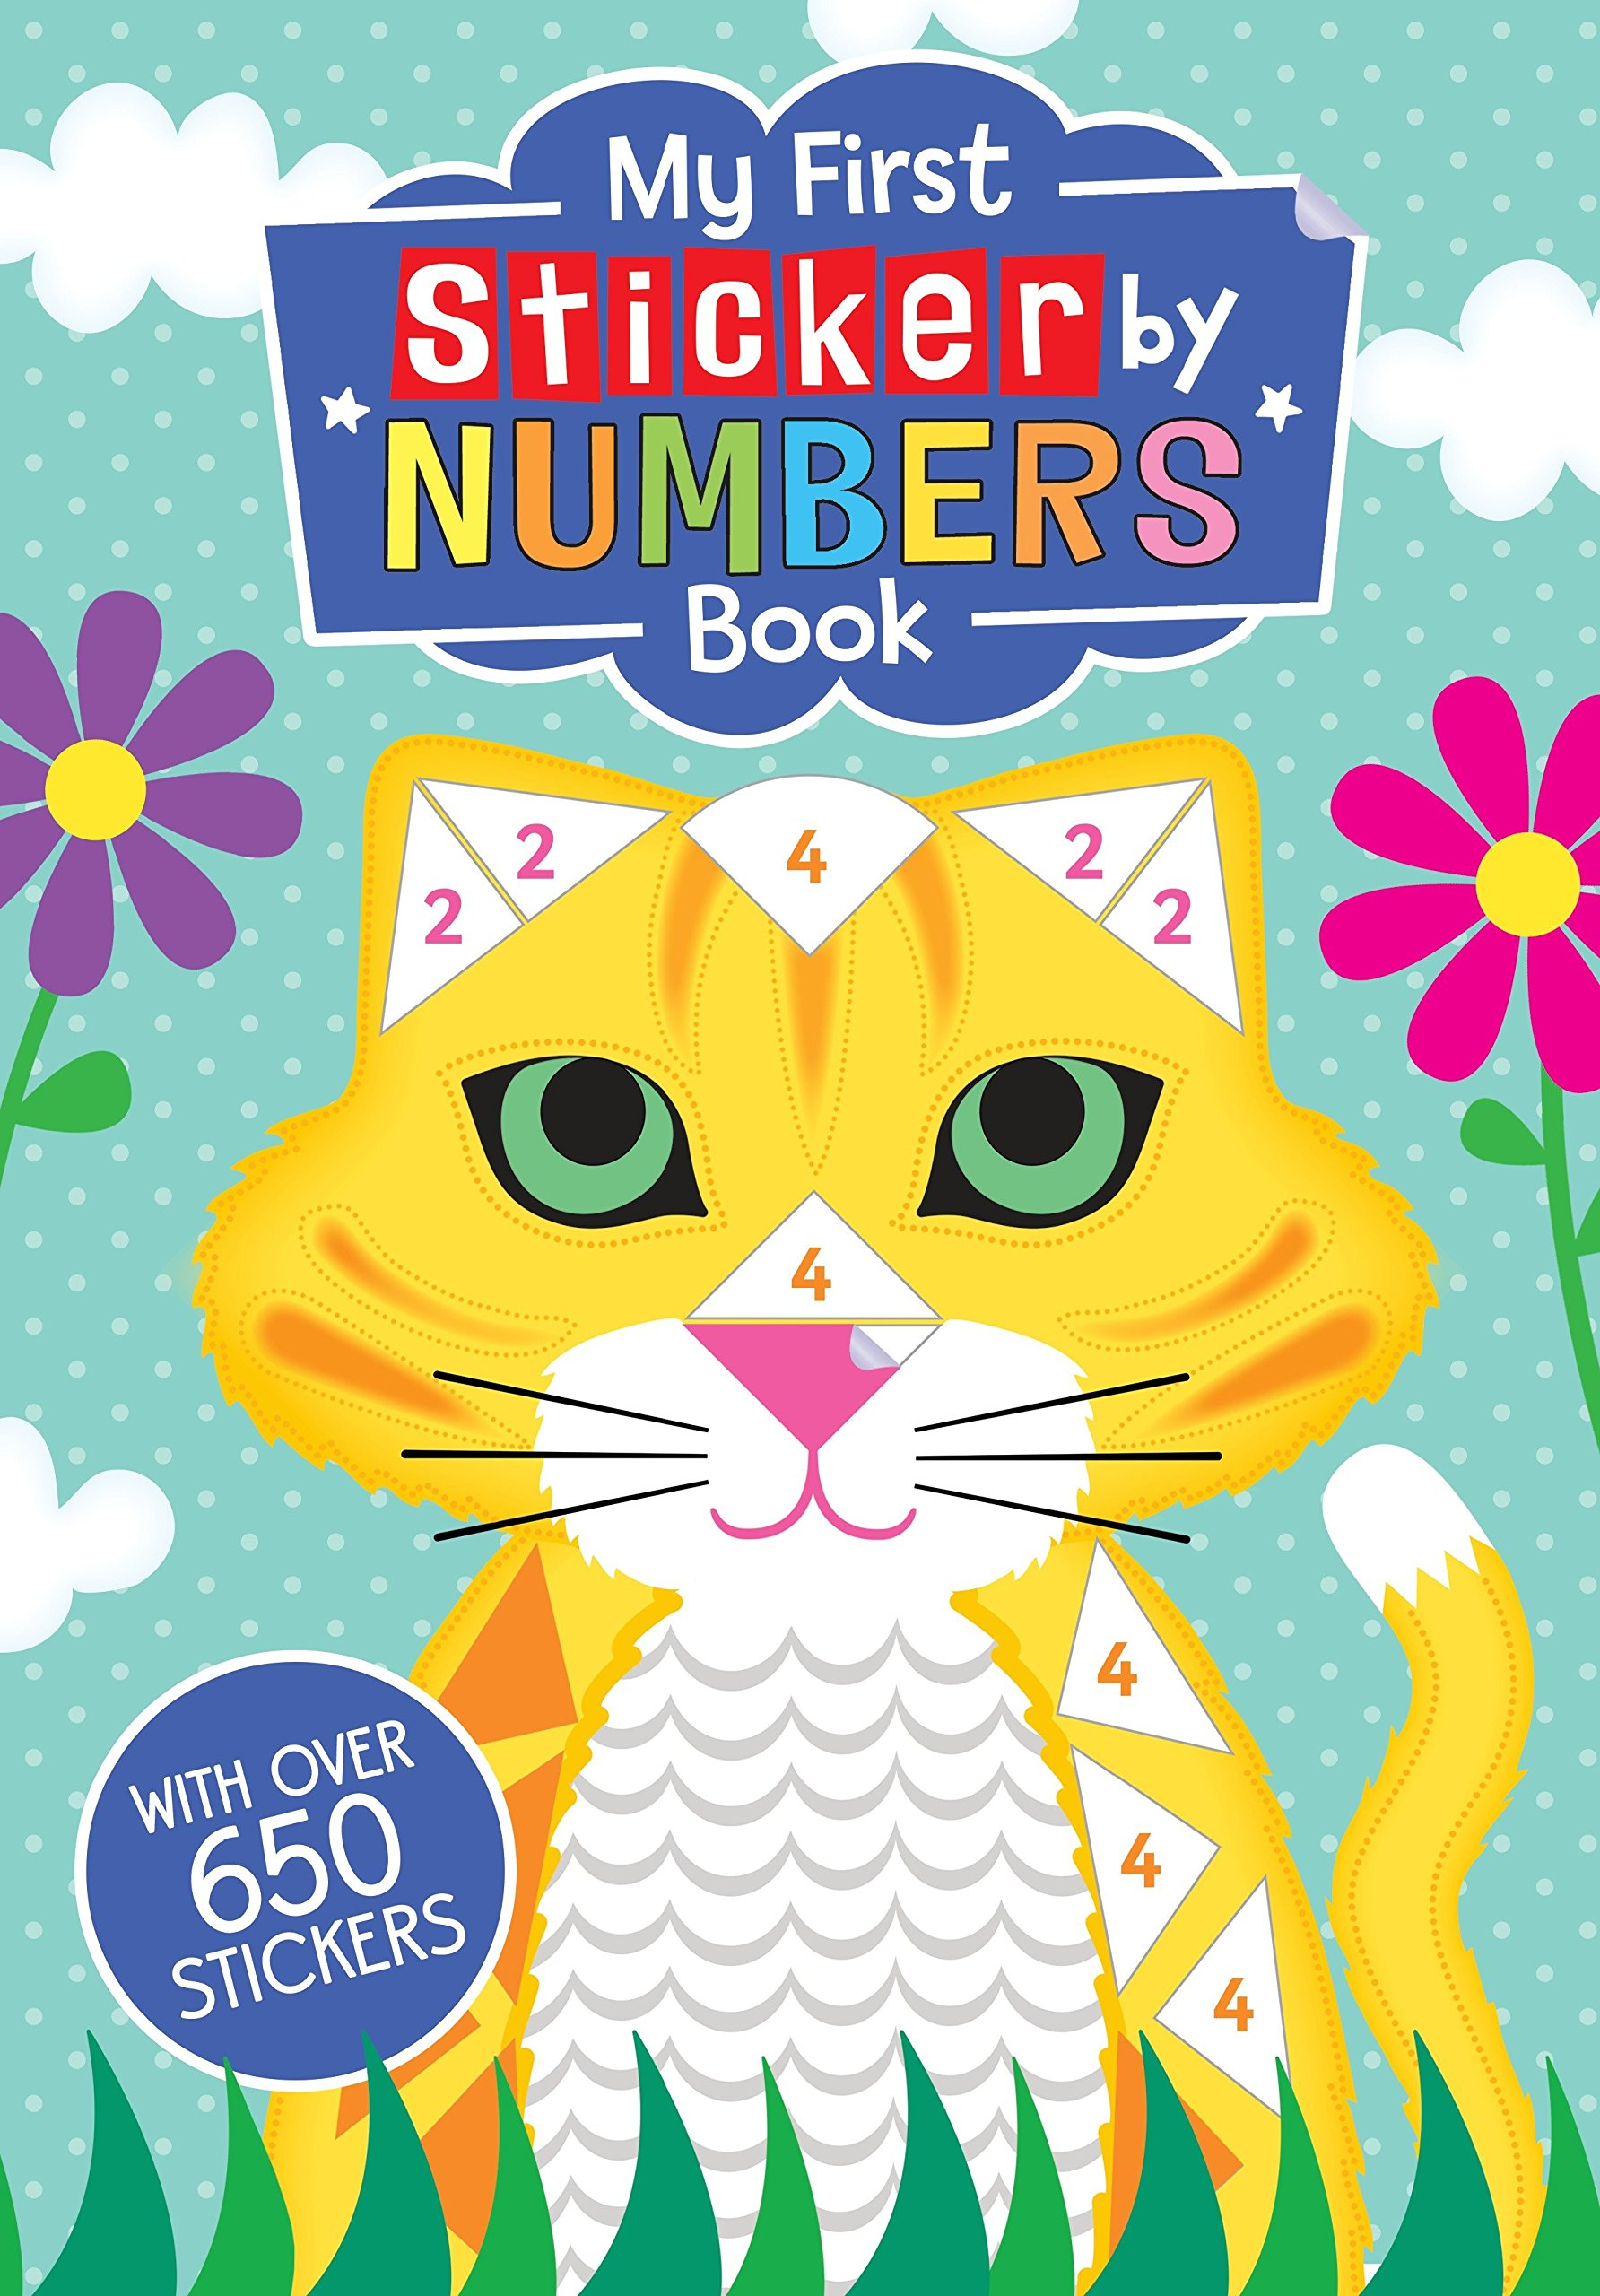 My First Sticker By Numbers Book Price Stern Sloan